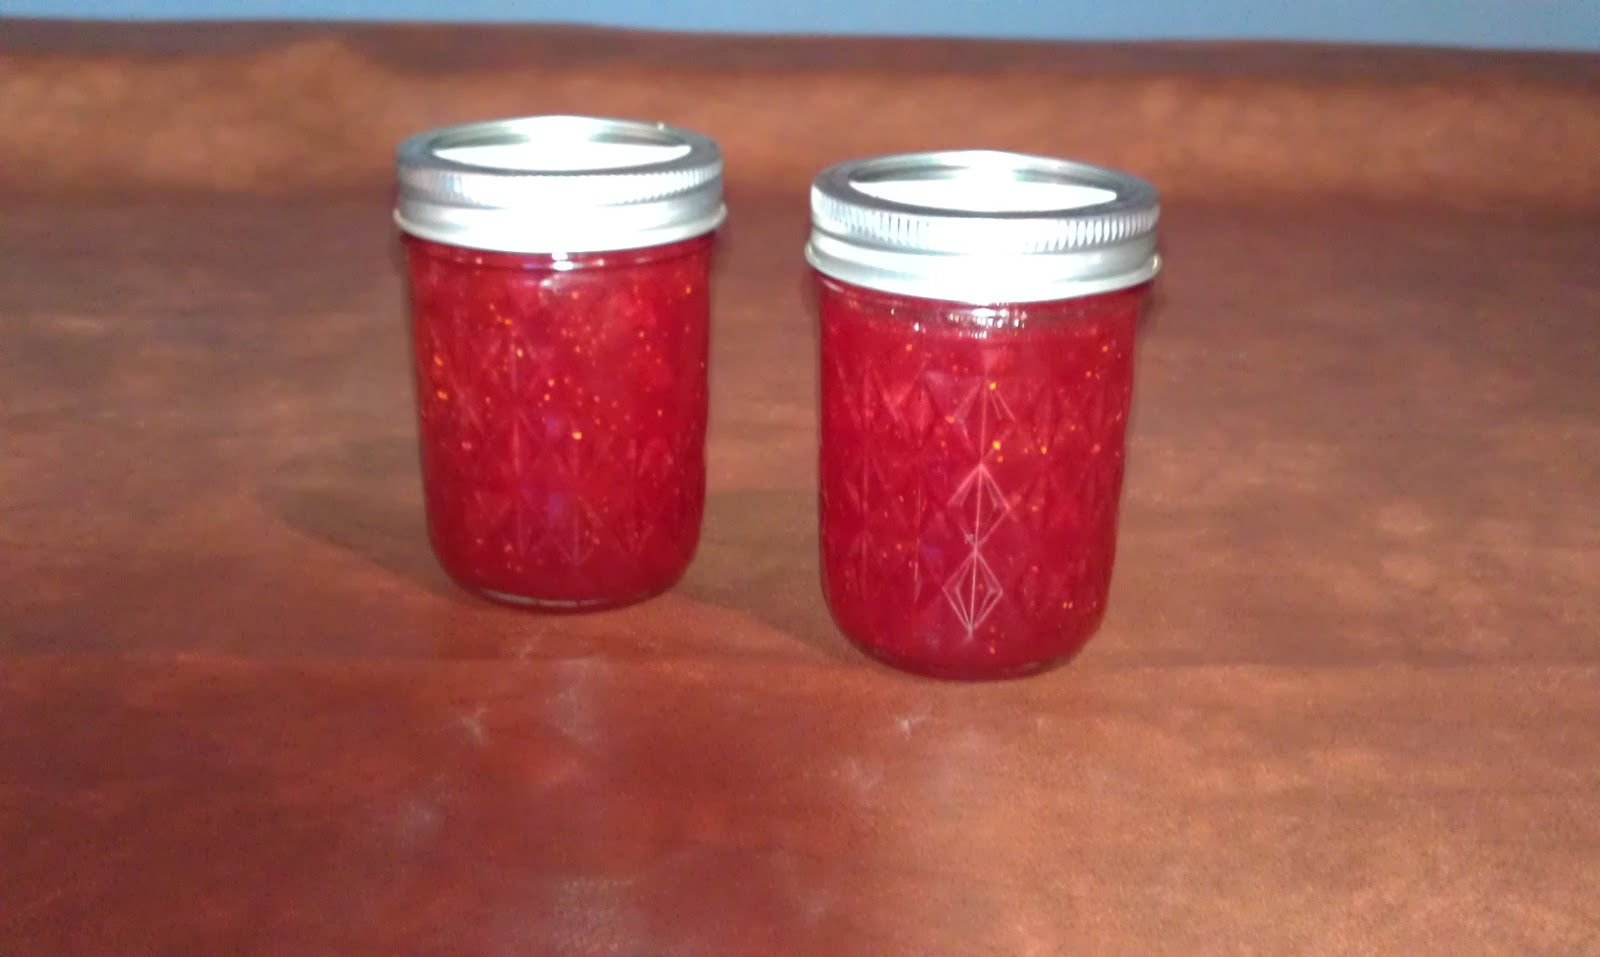 But I finally got off my ass and made some strawberry rhubarb jam a couple